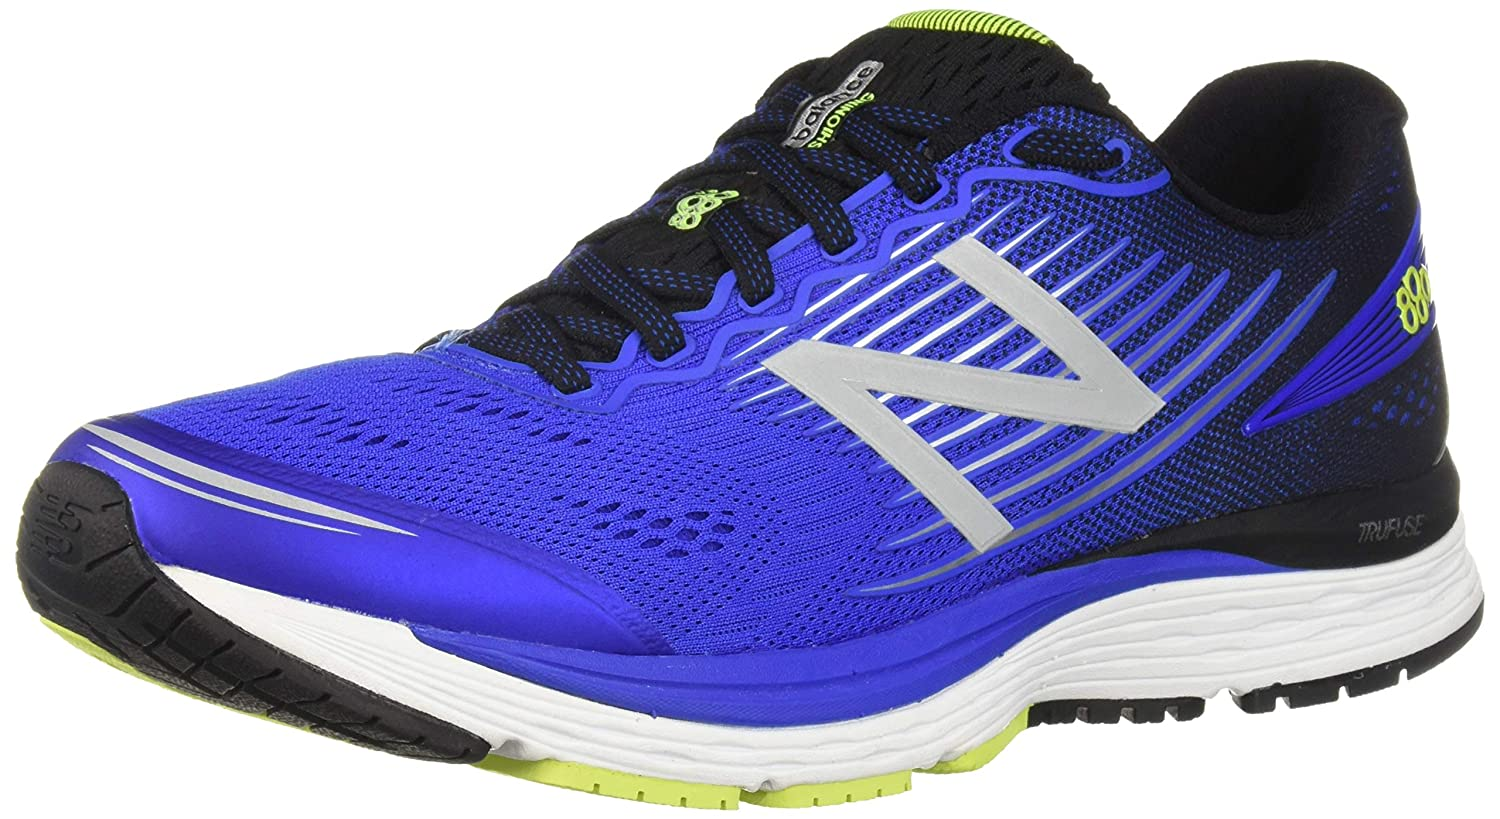 the best attitude 14f06 de755 New Balance 880v8 Running Shoes (2E Width) - AW18  Amazon.co.uk  Sports    Outdoors